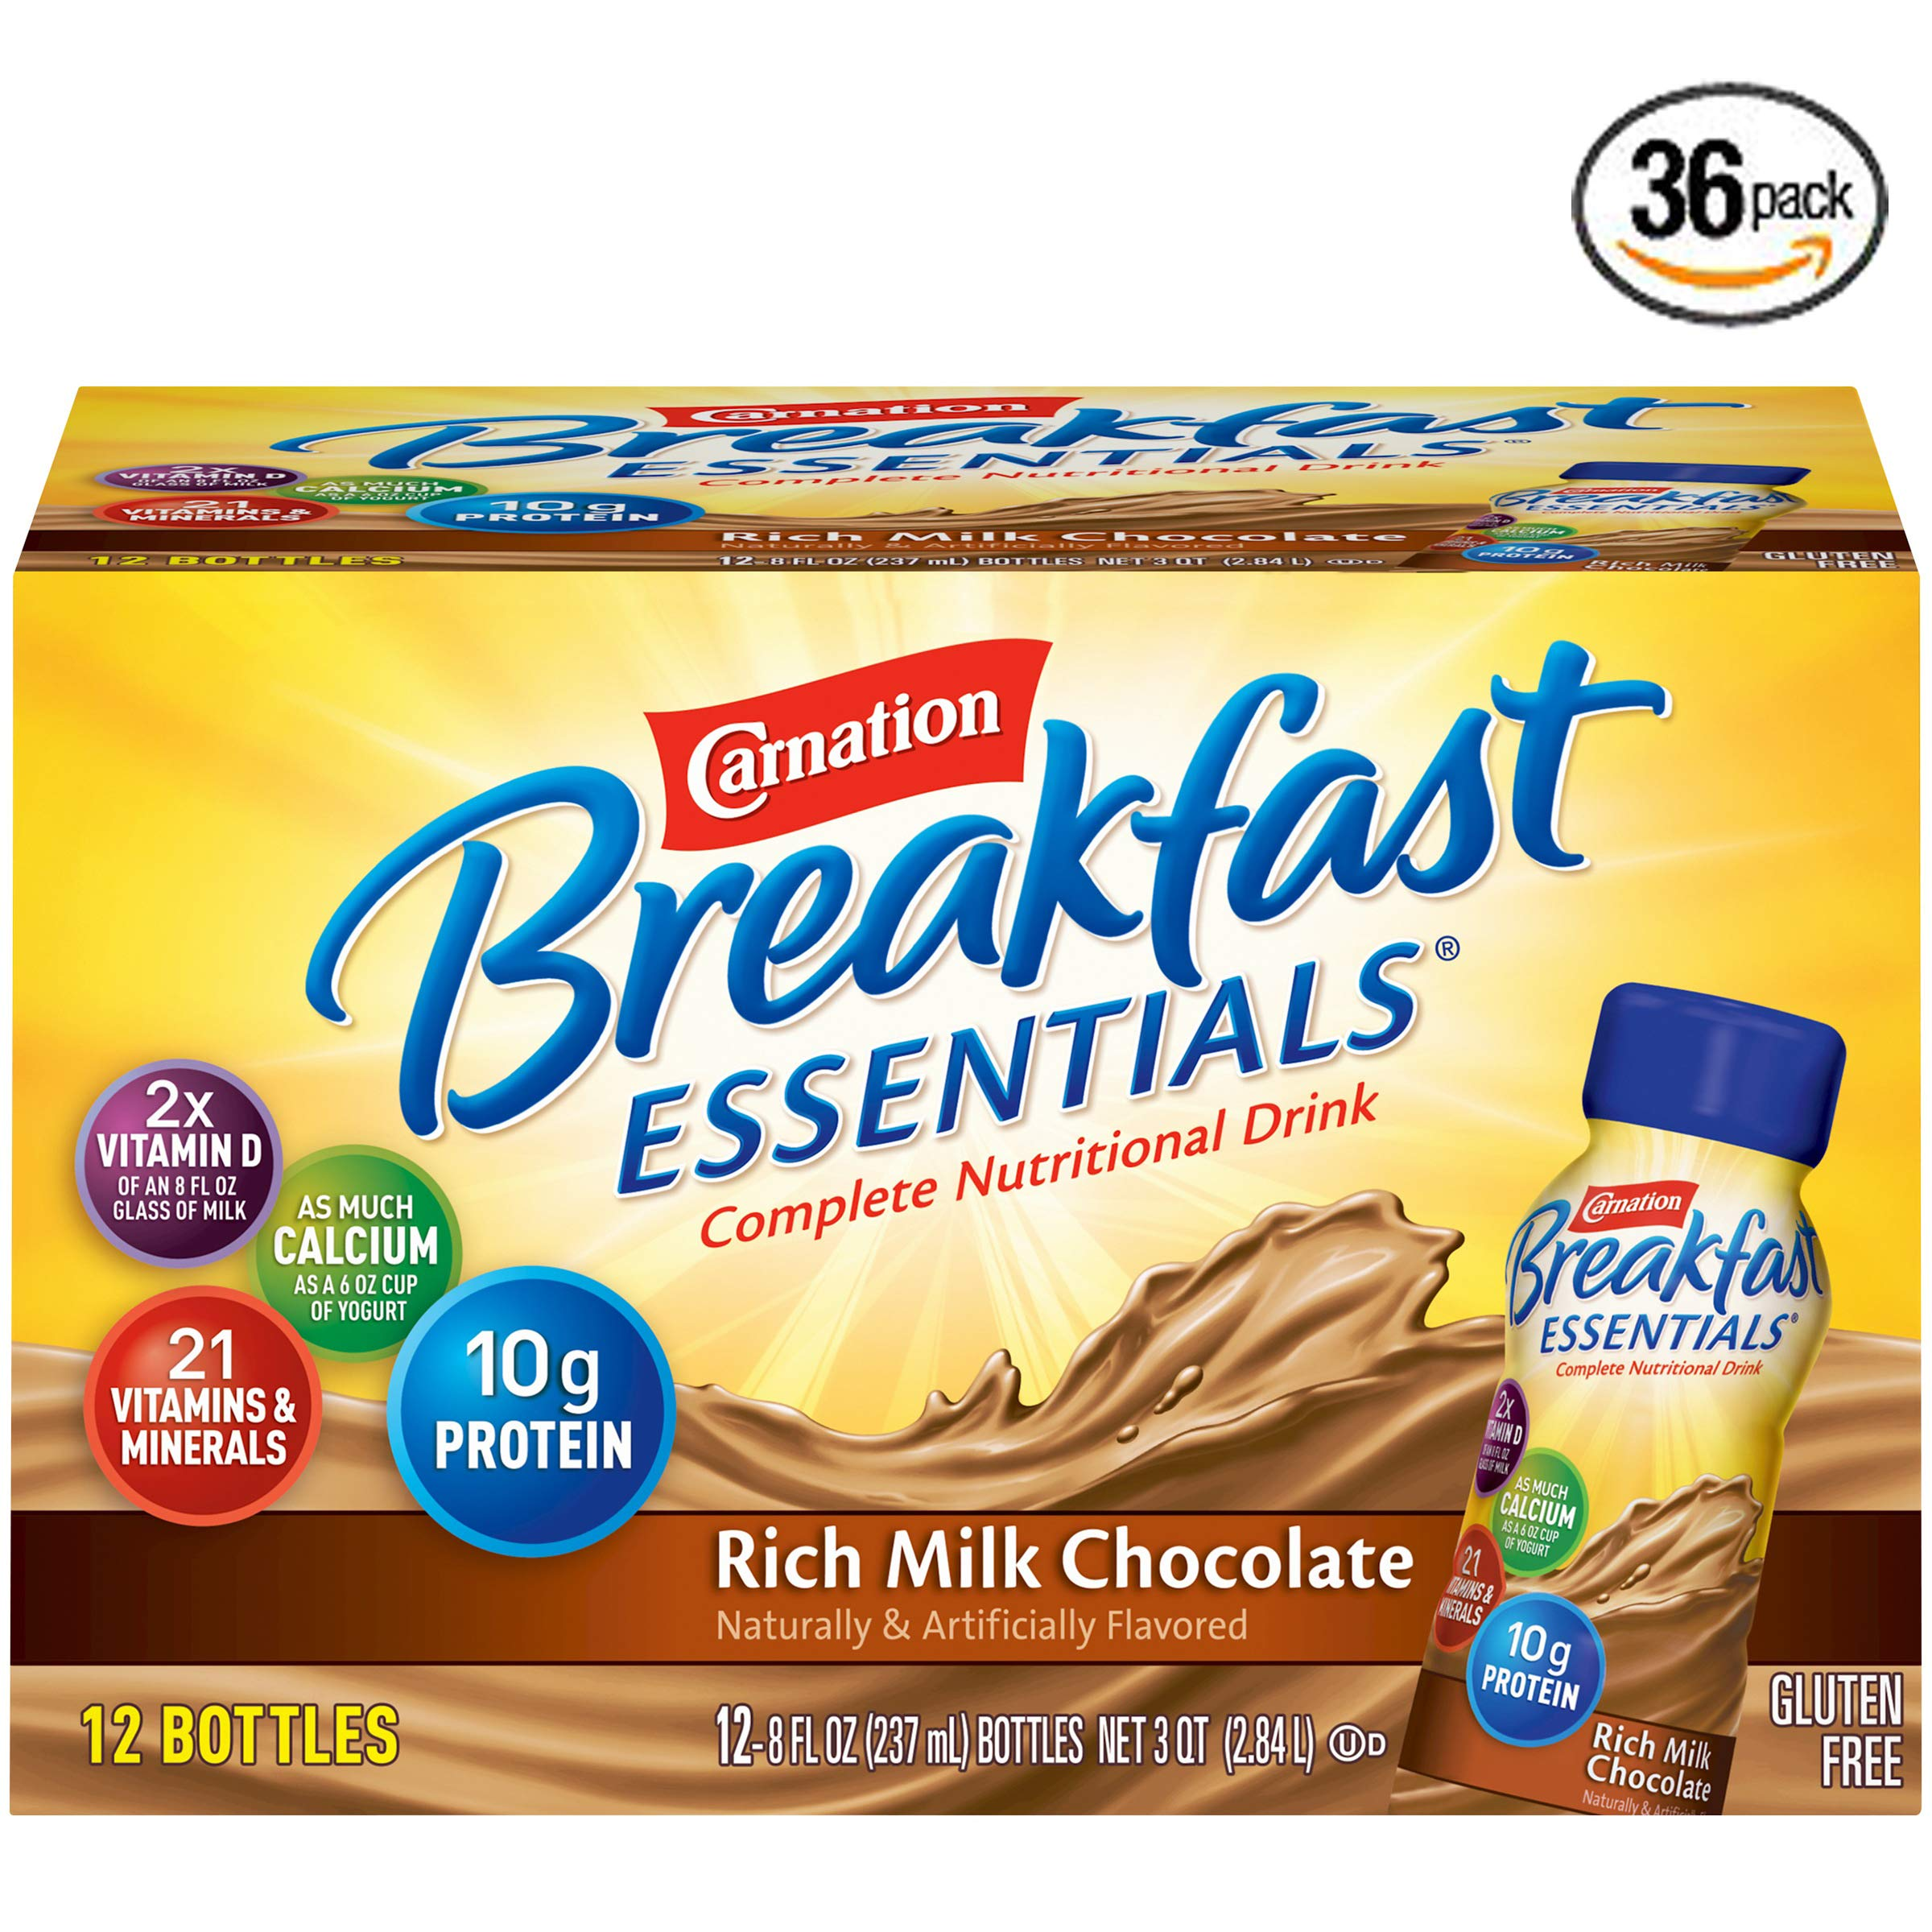 Carnation Breakfast Essentials Ready-to-Drink, Rich Milk Chocolate, 8 fl oz Bottle, 36 Count